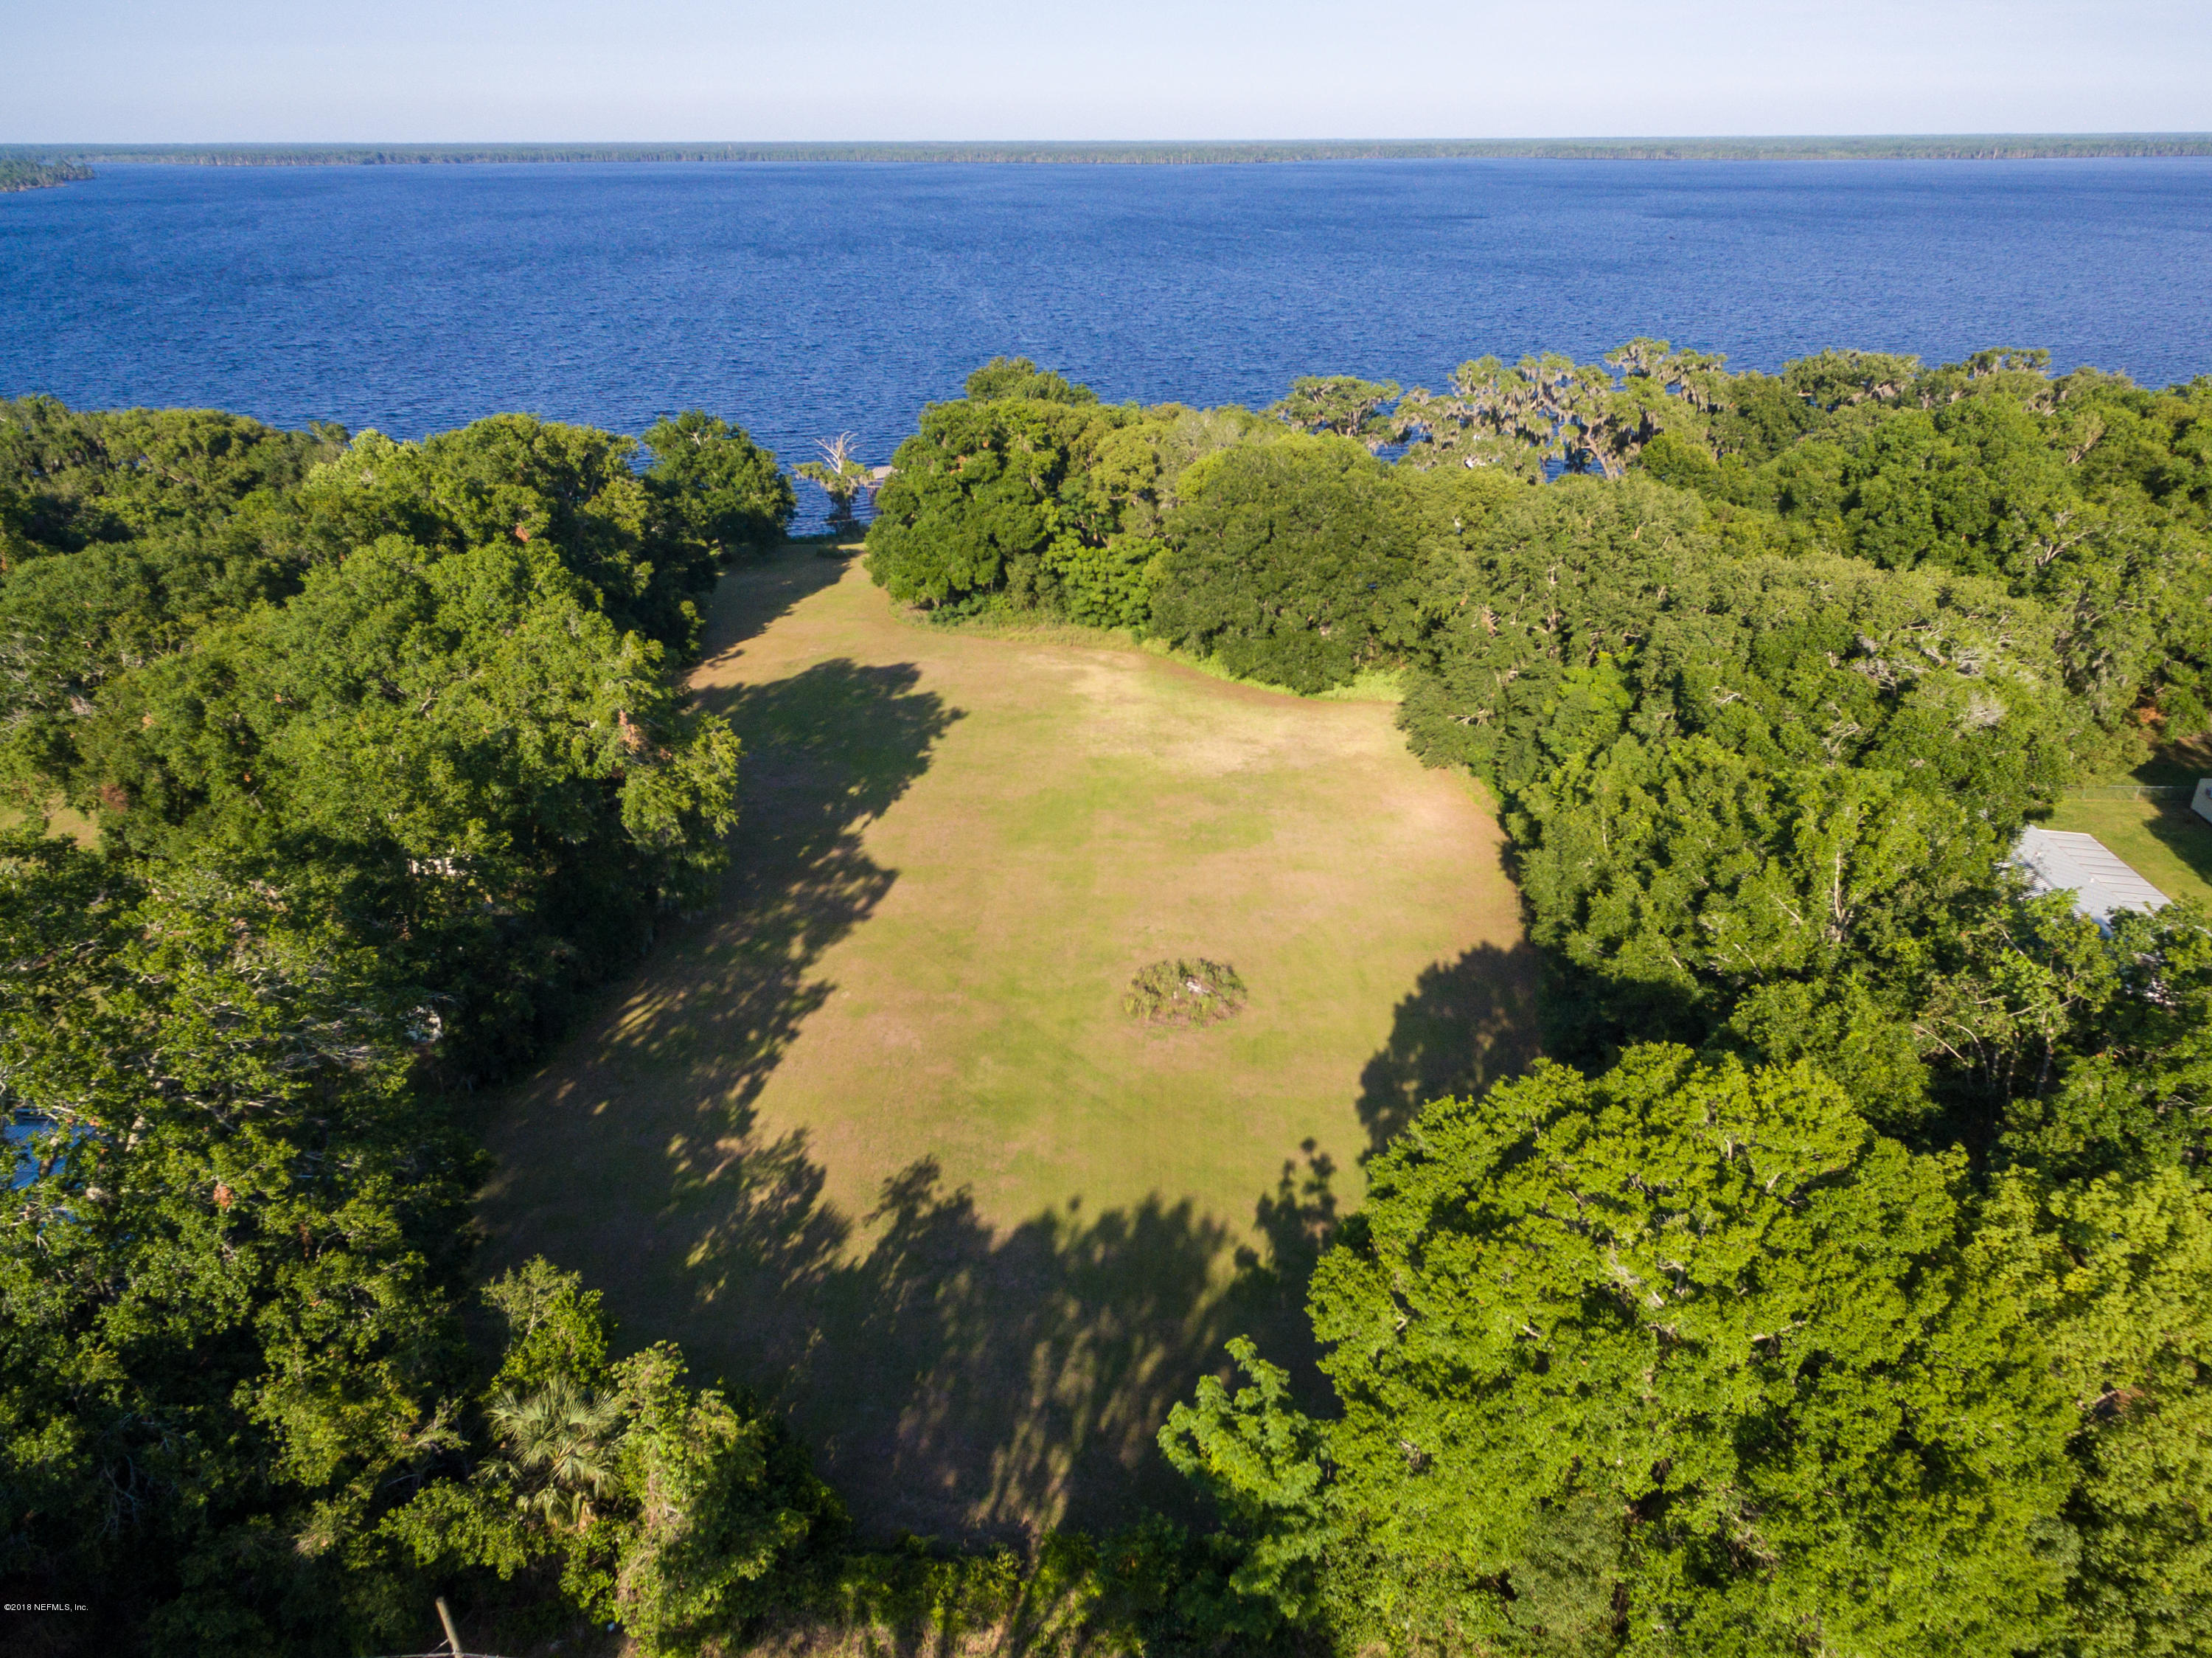 435 PROSPECT, CRESCENT CITY, FLORIDA 32112, ,Vacant land,For sale,PROSPECT,935819